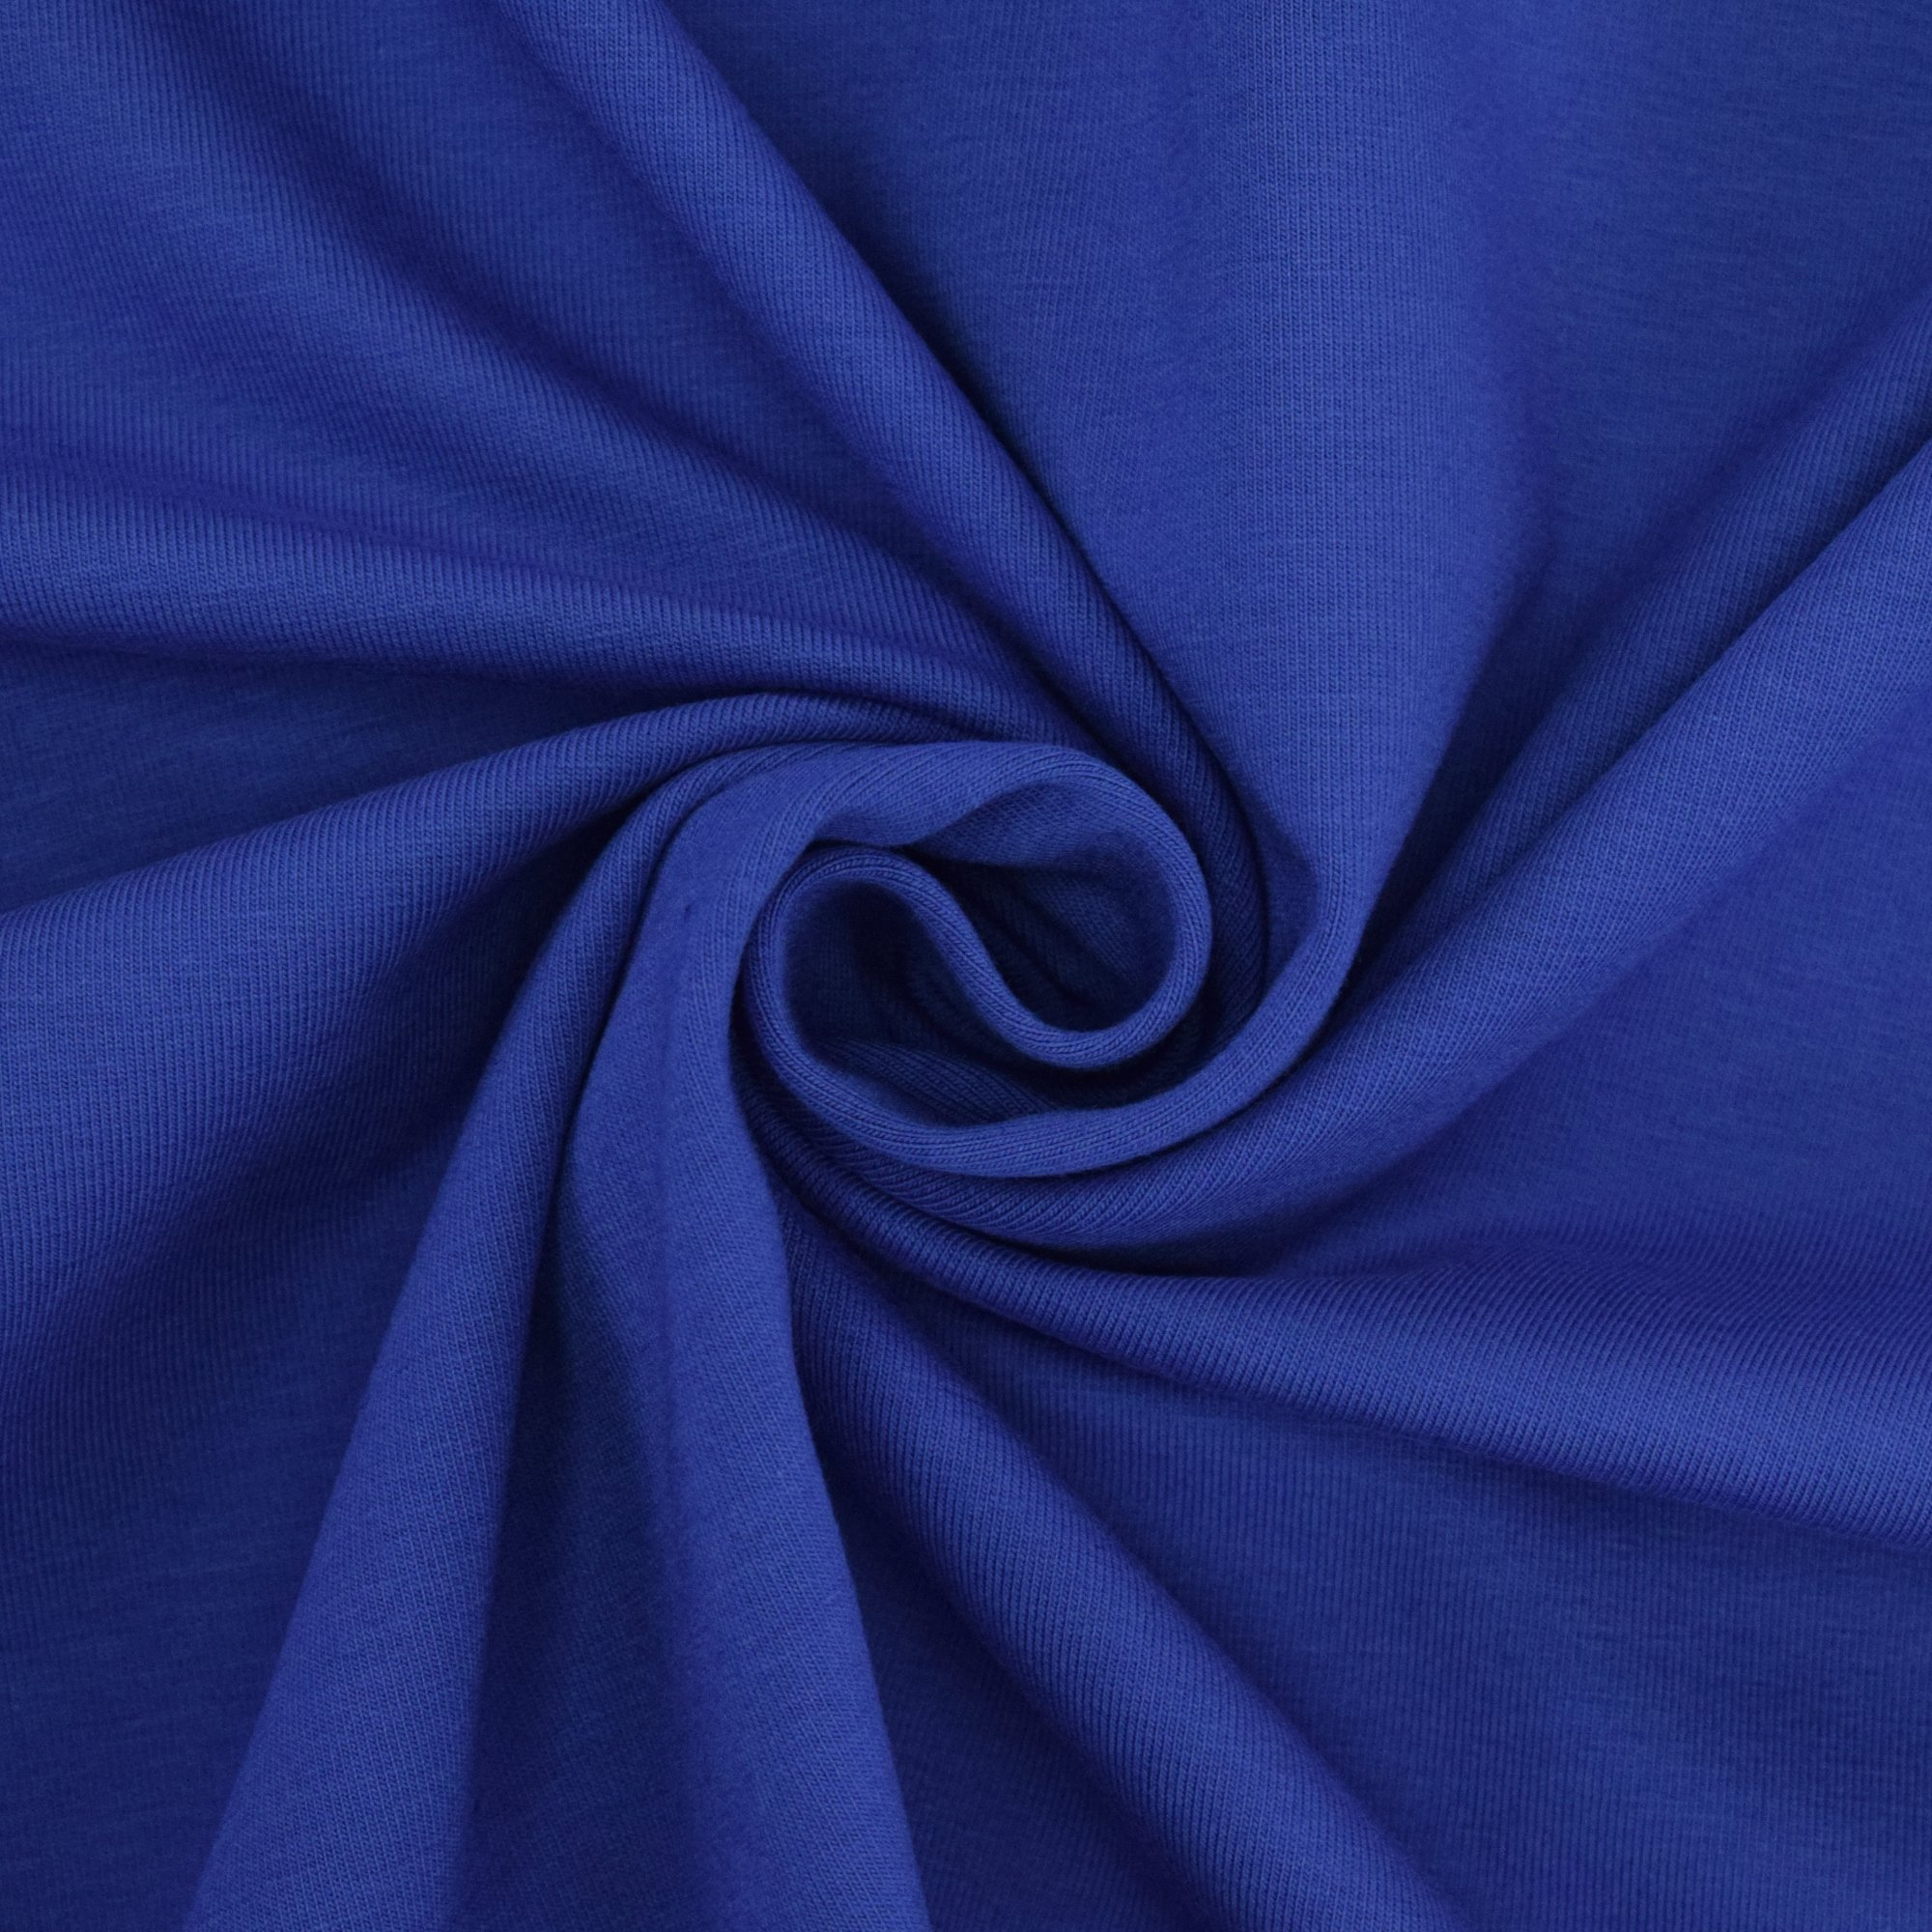 Cotton jersey plain, royal blue